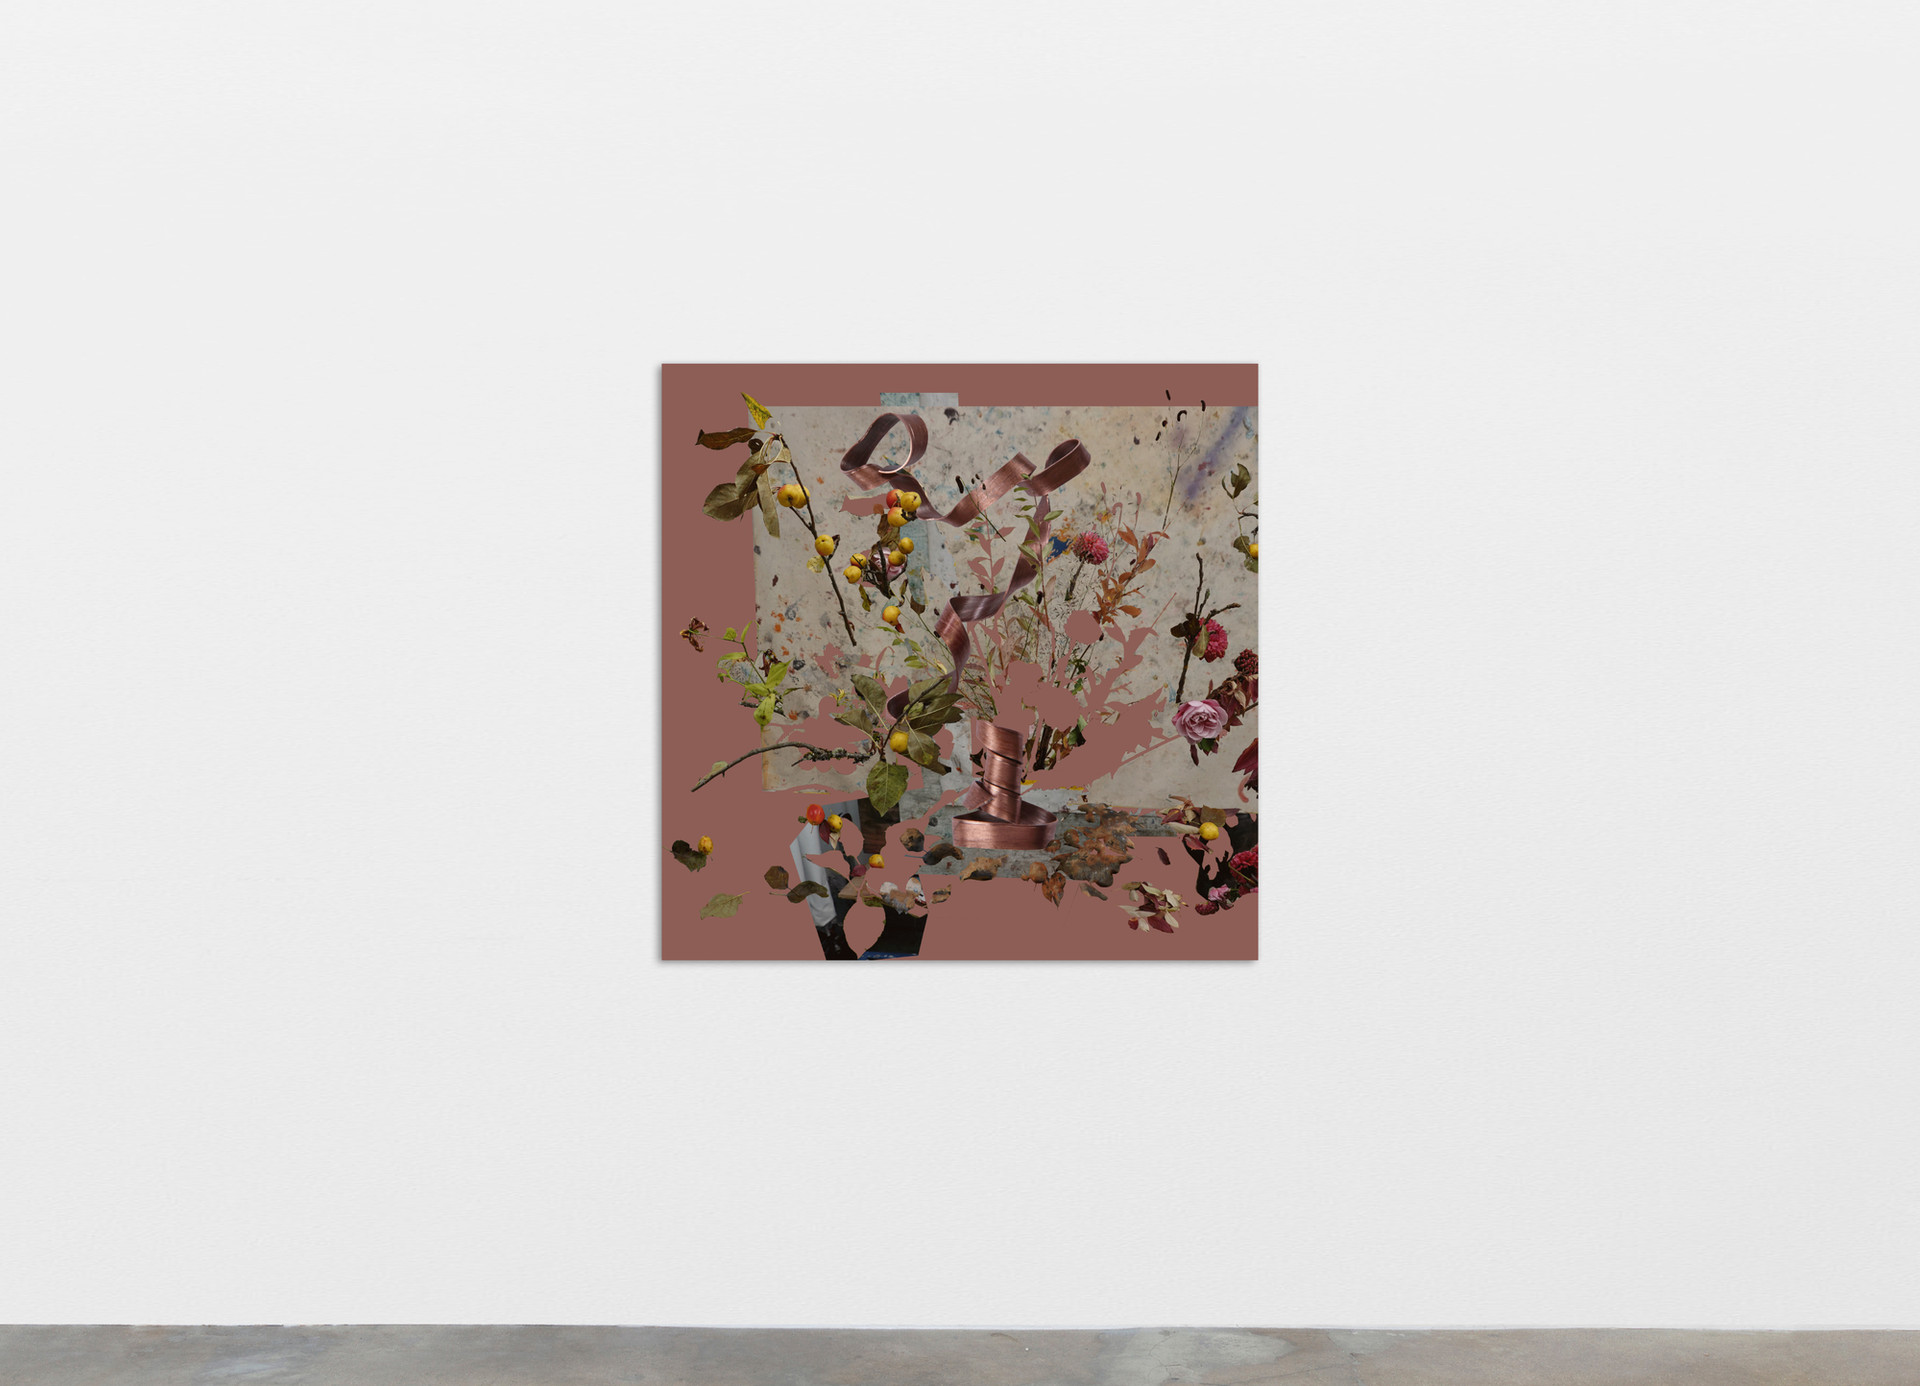 Petra Cortright 1831 Bremen 69 position_ancer, 2020 Digital painting on anodized aluminum 83.82 x 83.82 cm 33 x 33 in